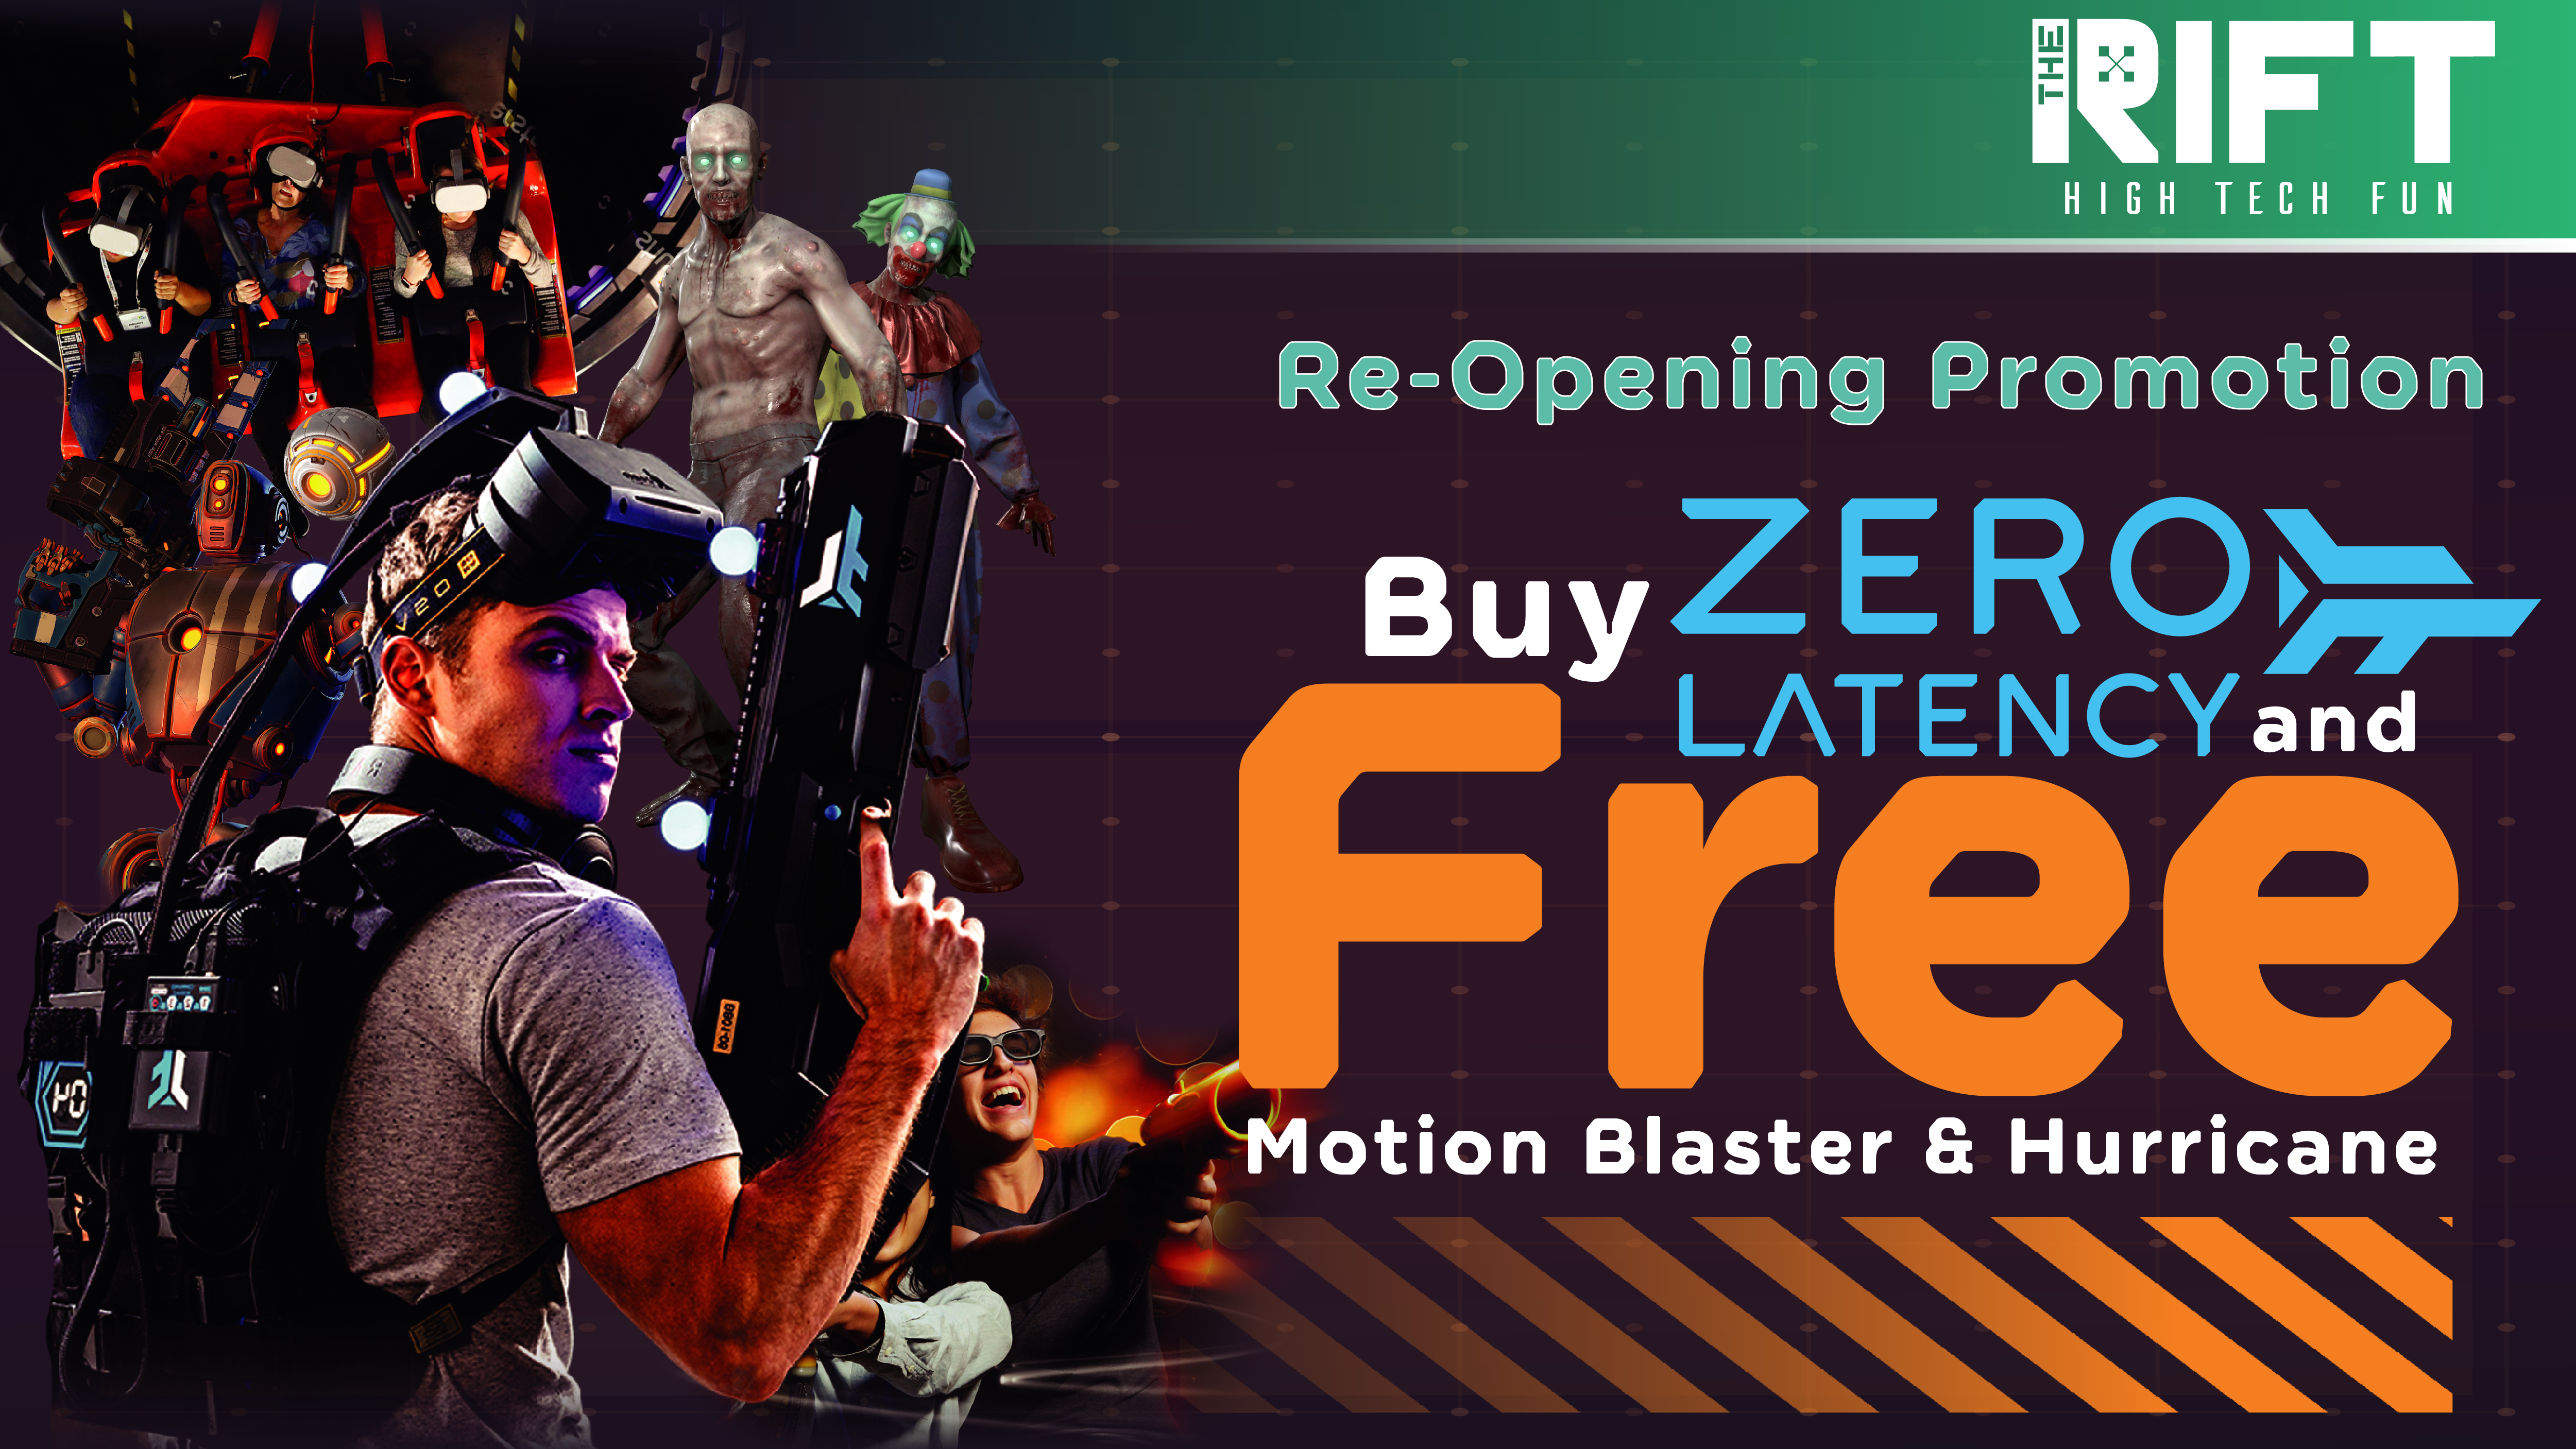 Buy Zero Latency, Get Motion Blaster and Hurricane ride for free